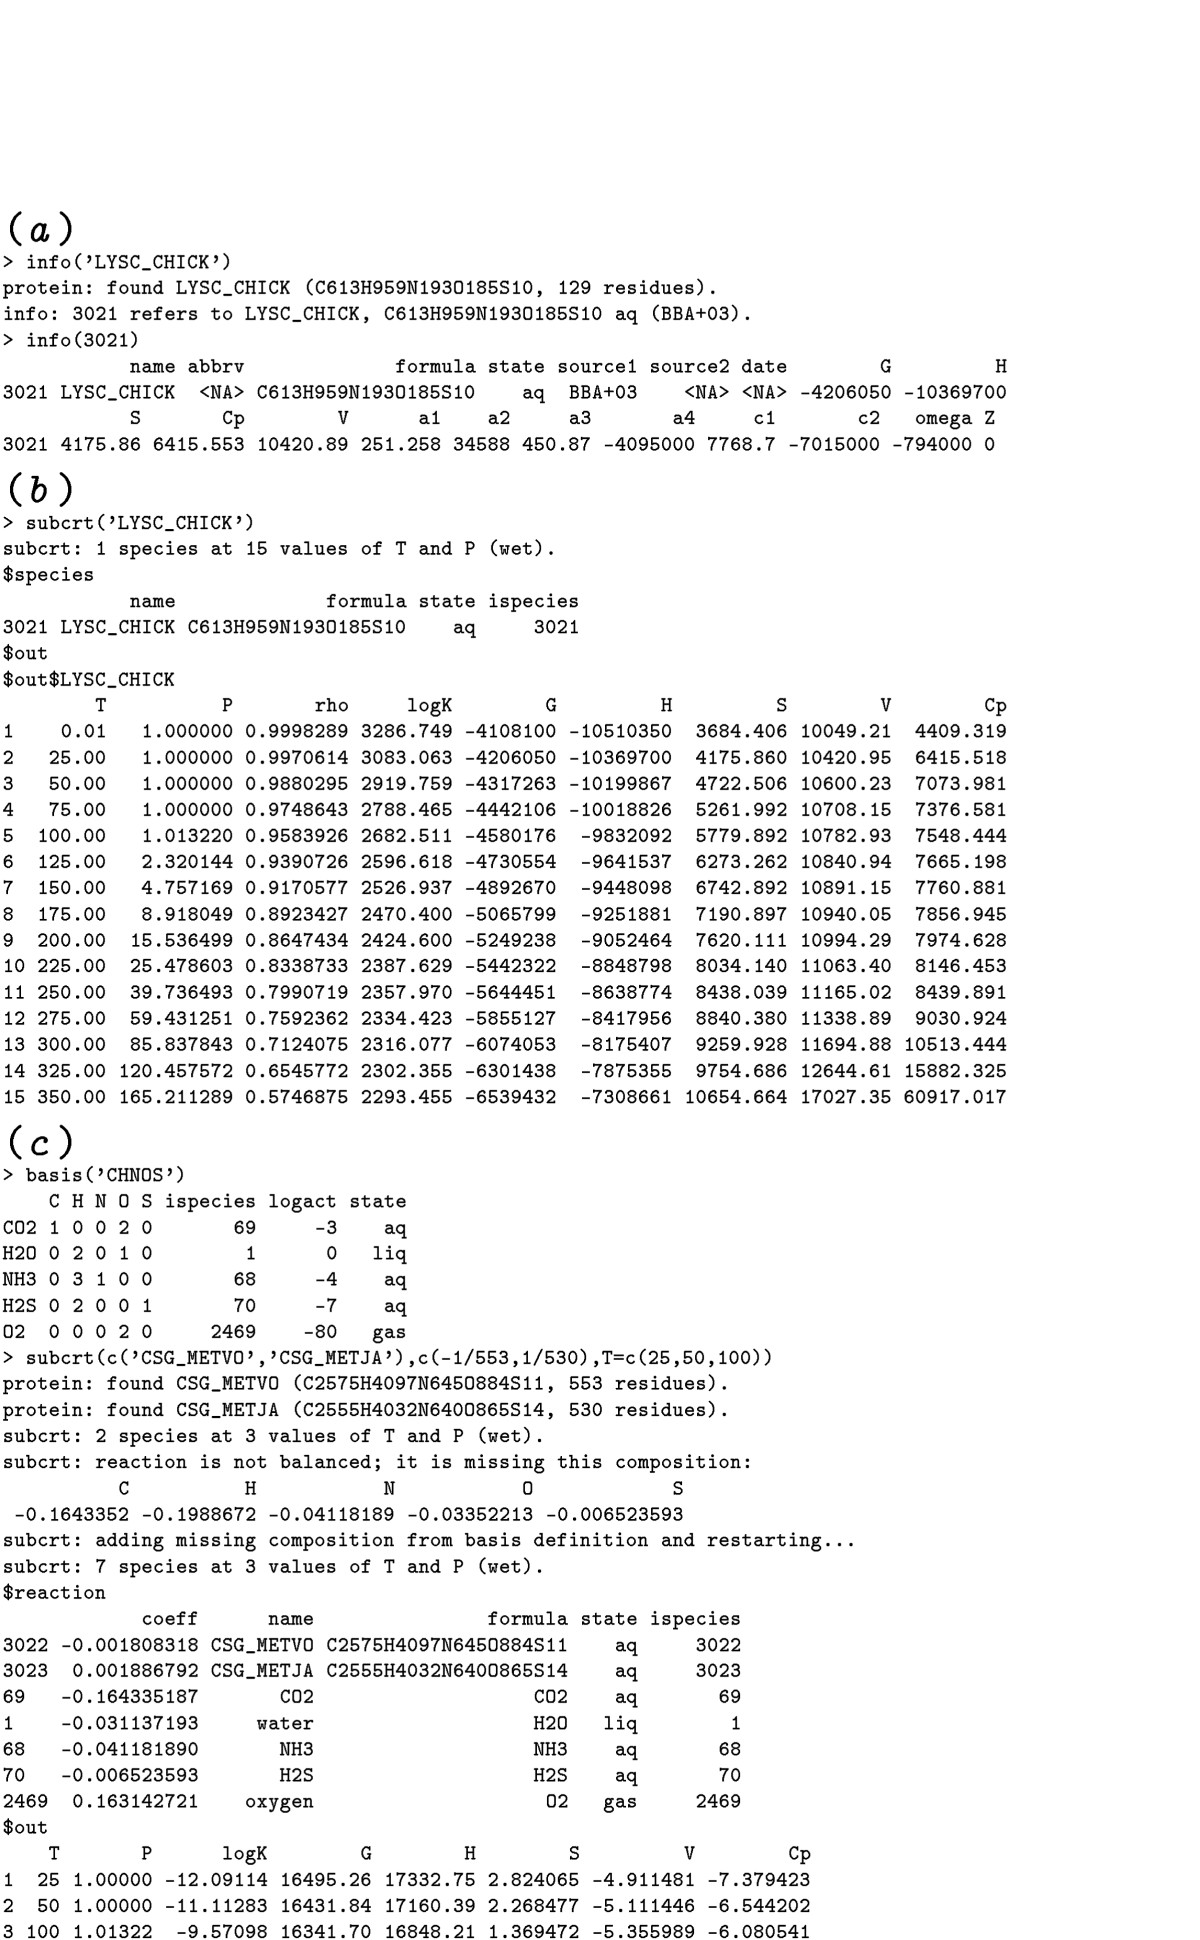 http://static-content.springer.com/image/art%3A10.1186%2F1467-4866-9-10/MediaObjects/12932_2008_Article_91_Fig2_HTML.jpg